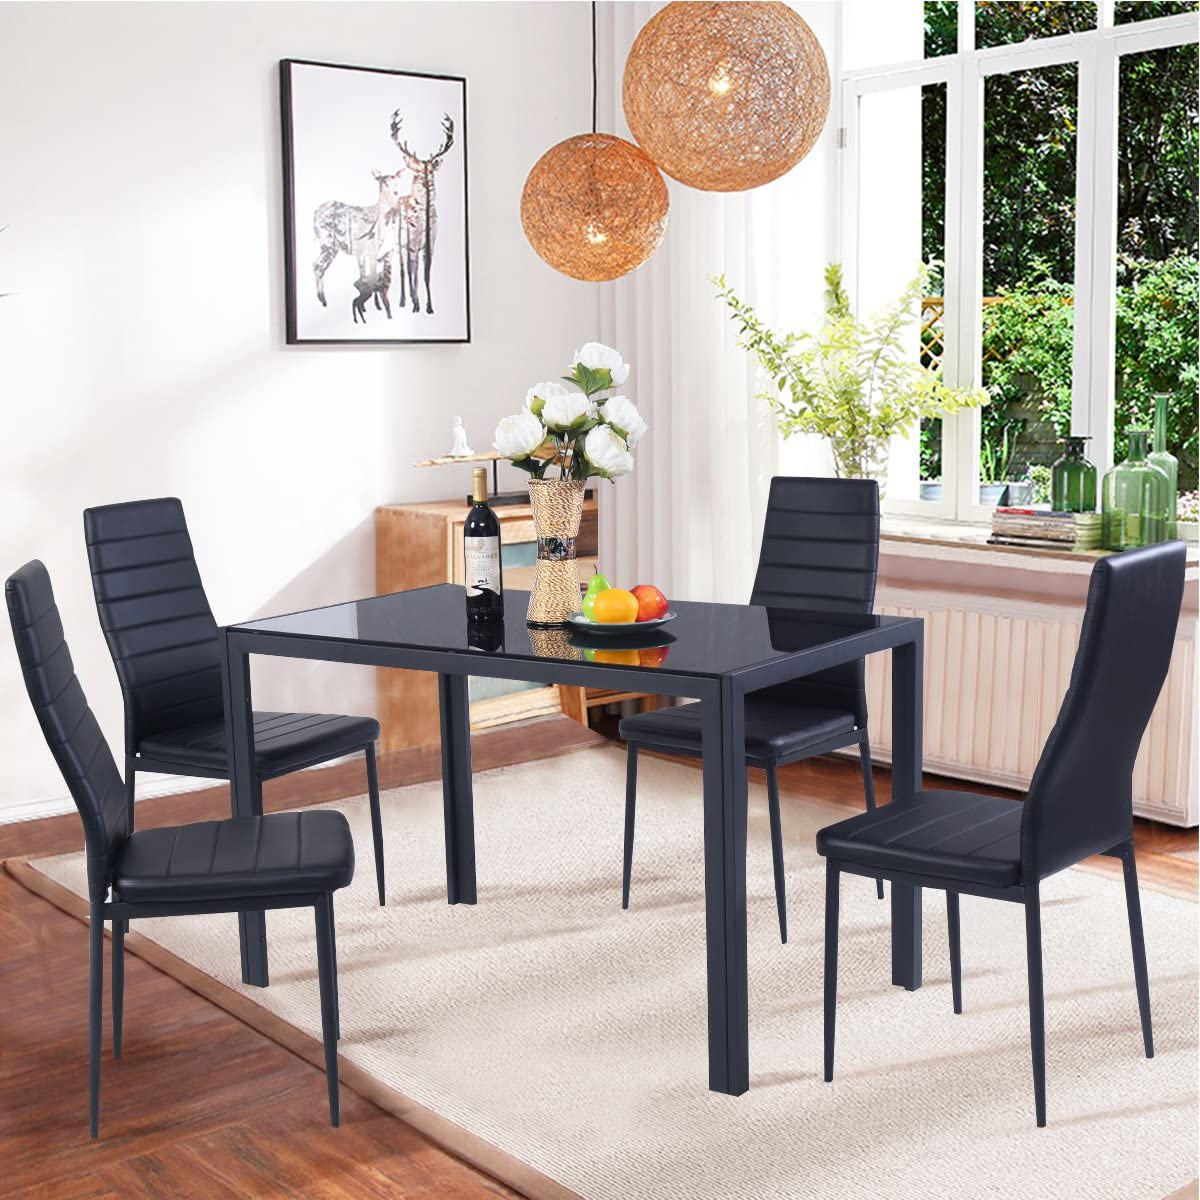 Casart Kitchen Dining Table and Top Chair Set with Ranking TOP9 Glass Nippon regular agency